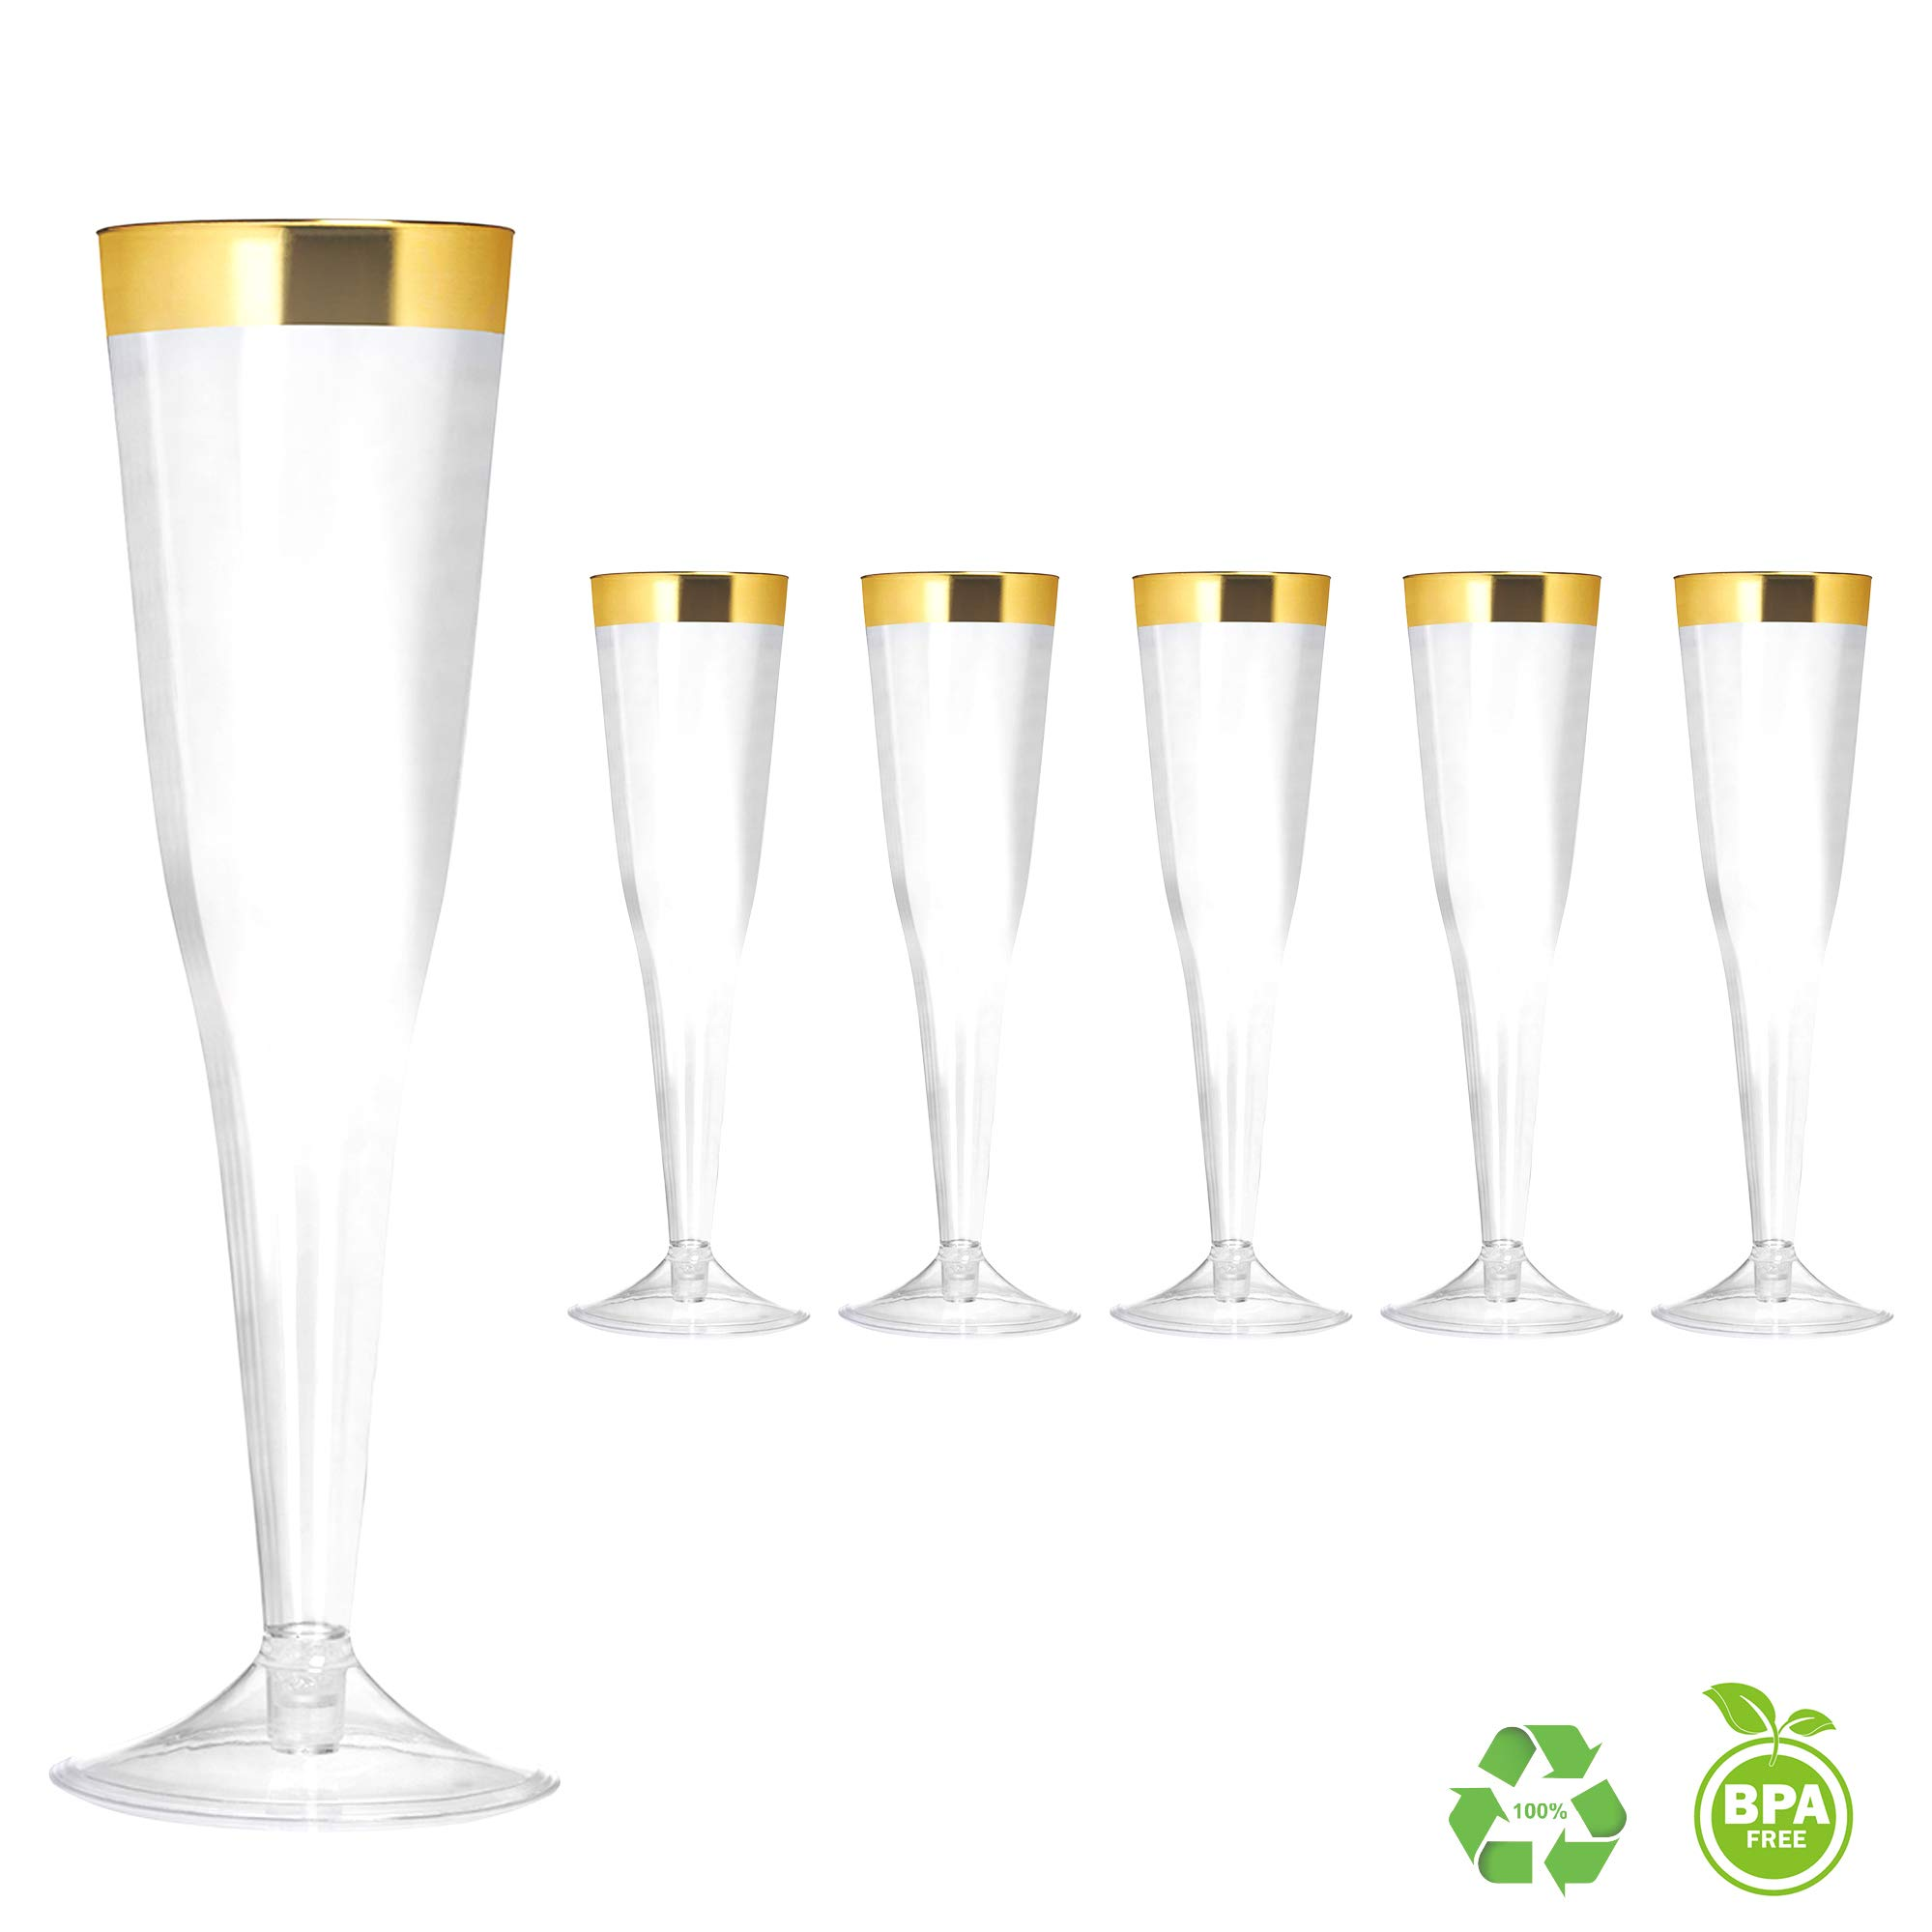 Clear Plastic Disposable Party Cups 6 Ounce Champagne Flutes (50 Pack) Elegant 6oz Disposable Stemware with Gold Rim Perfect for Holiday Party Wedding and Special Occasions, Gold by Stock Your Home